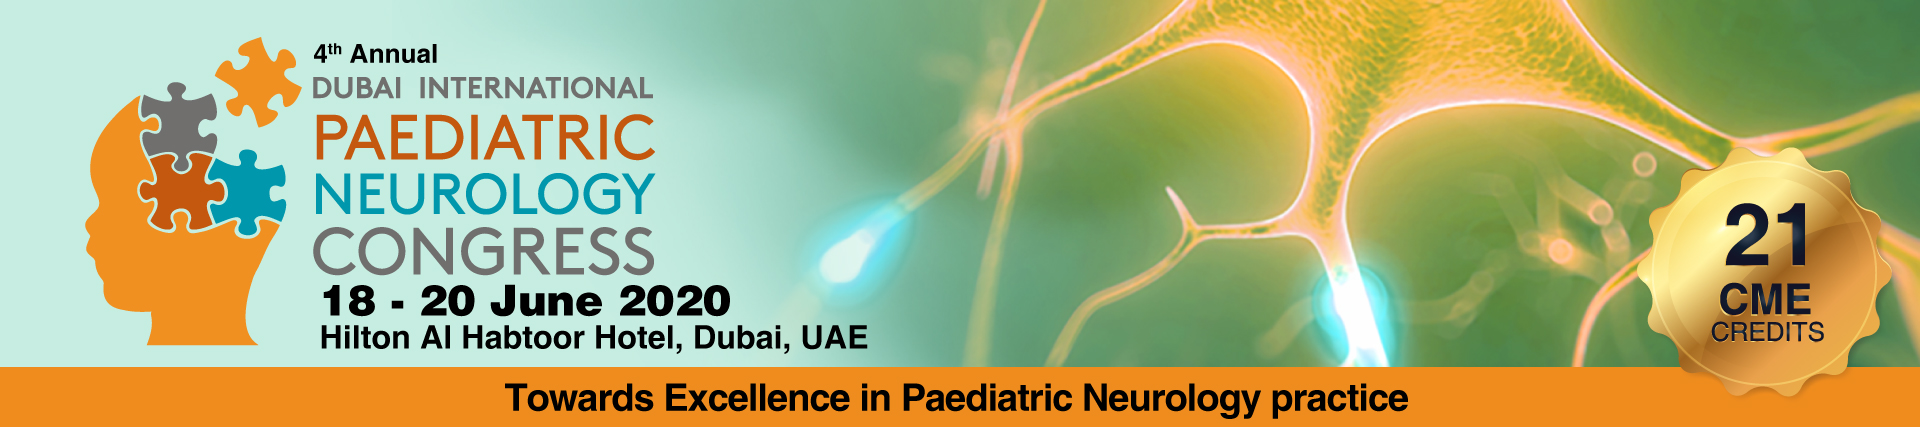 4th Annual Dubai International Paediatric Neurology Congress